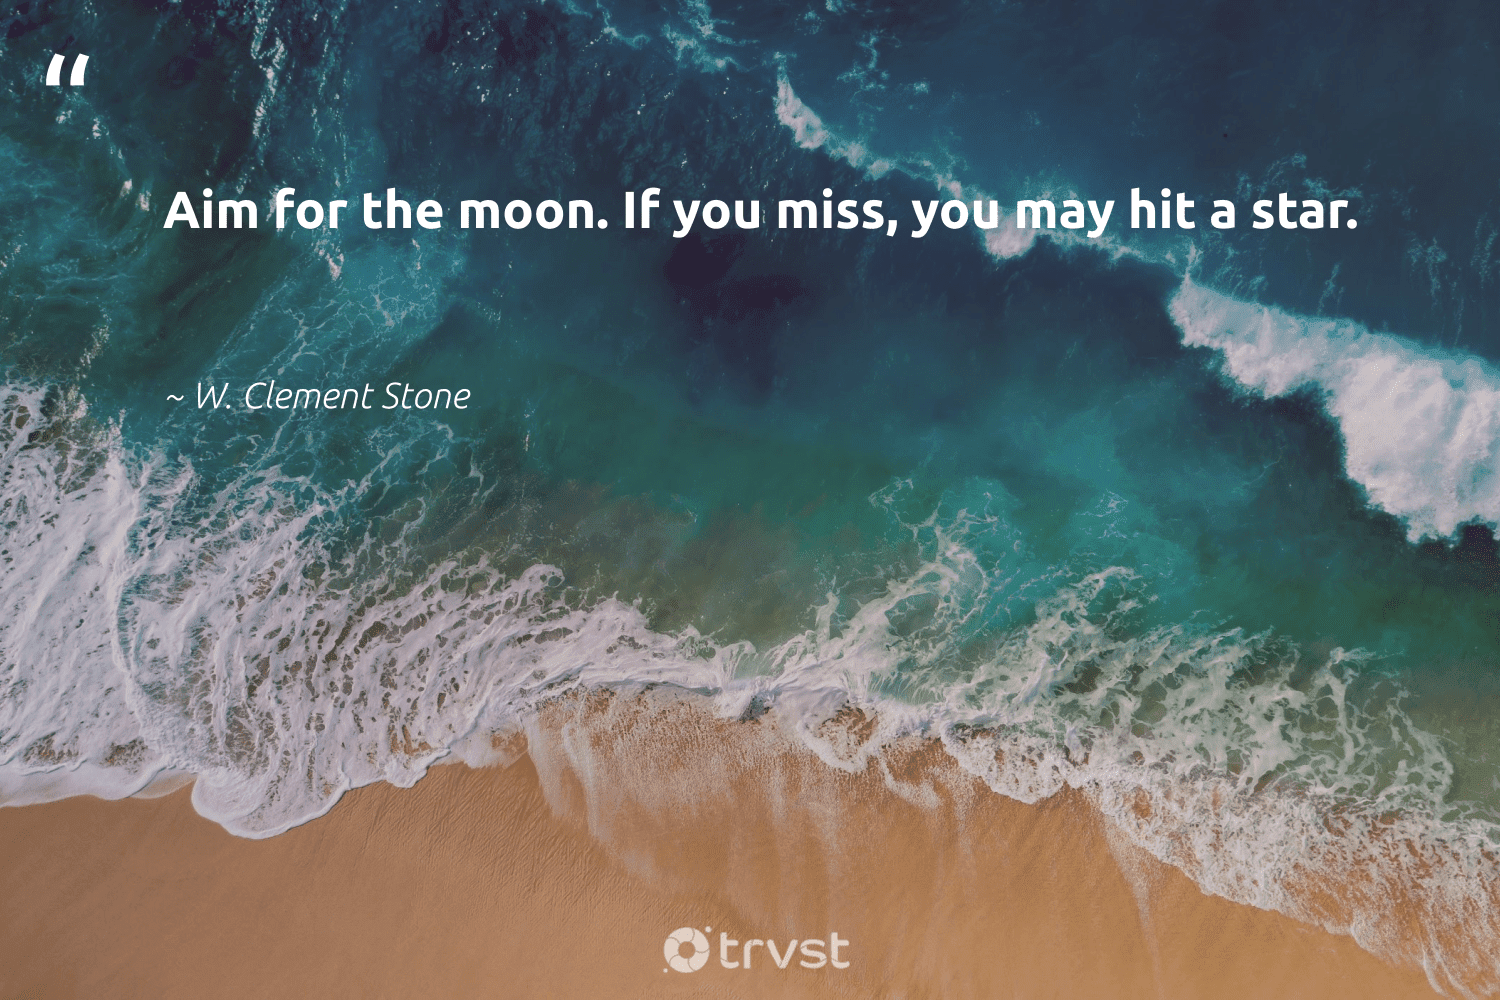 """""""Aim for the moon. If you miss, you may hit a star.""""  - W. Clement Stone #trvst #quotes #futureofwork #dogood #nevergiveup #dotherightthing #softskills #gogreen #begreat #thinkgreen #collectiveaction #socialimpact"""